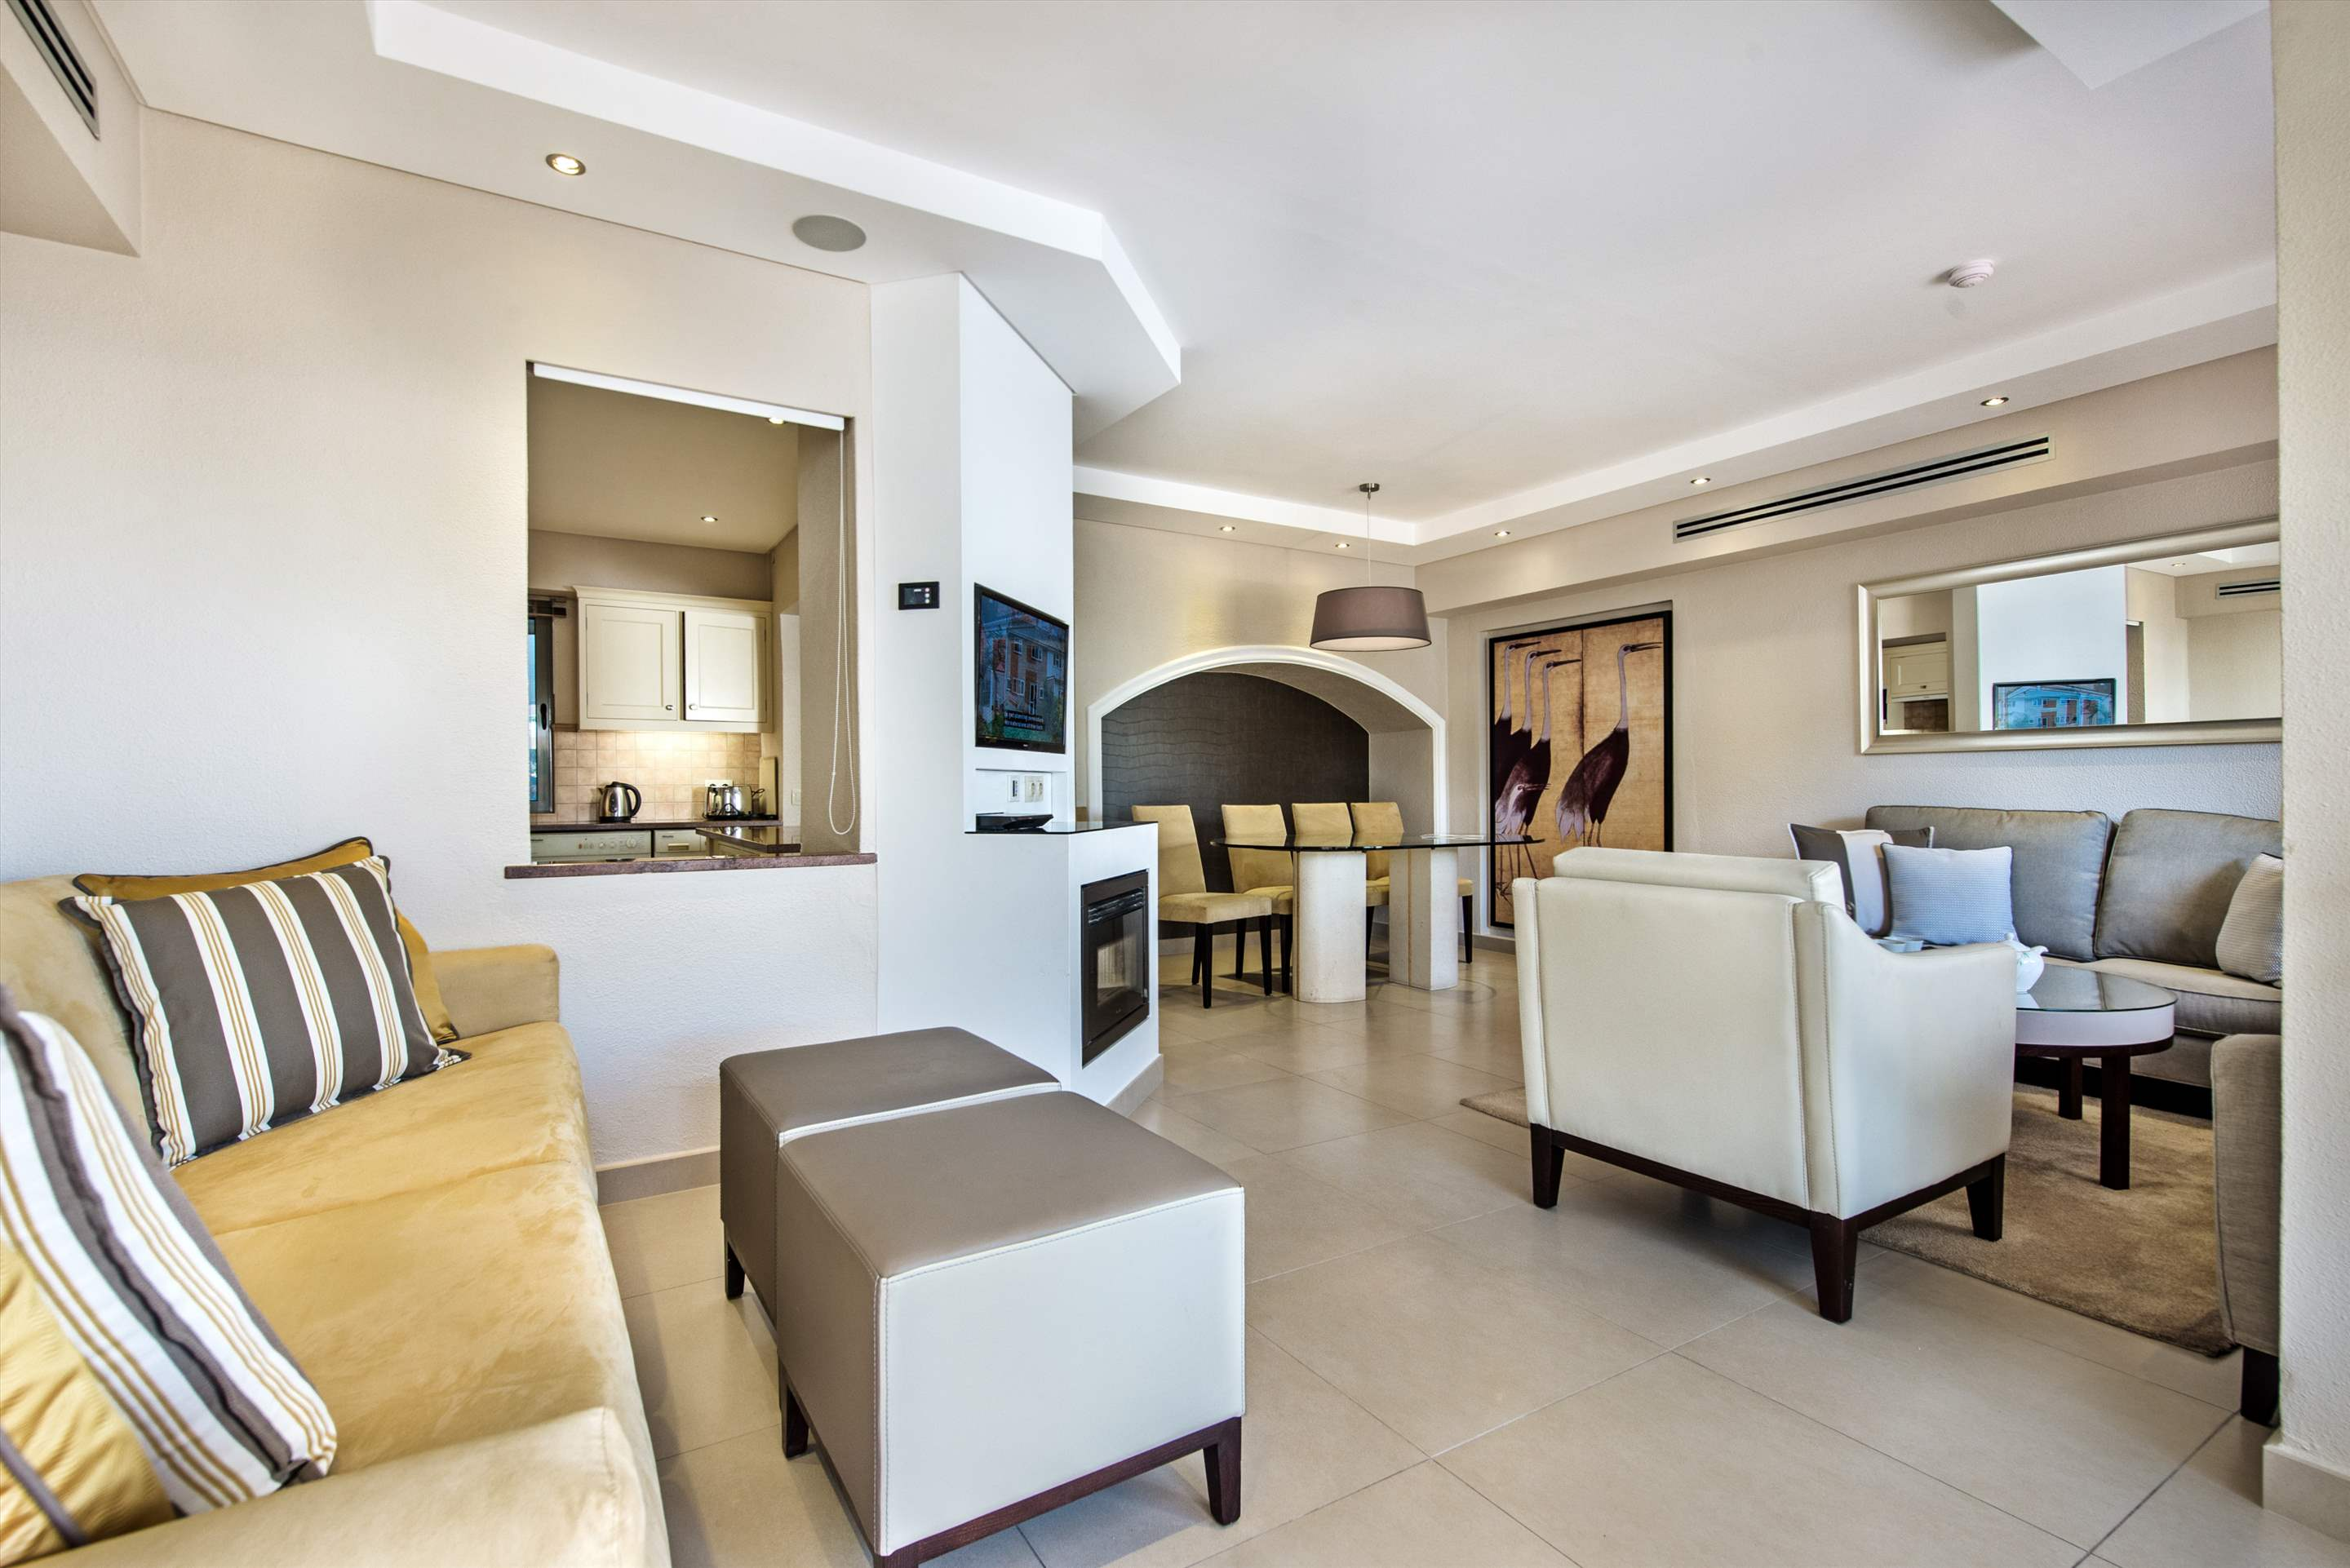 Four Seasons Country Club 1 bed, Superior - Saturday Arrival, 1 bedroom apartment in Four Seasons Country Club, Algarve Photo #4